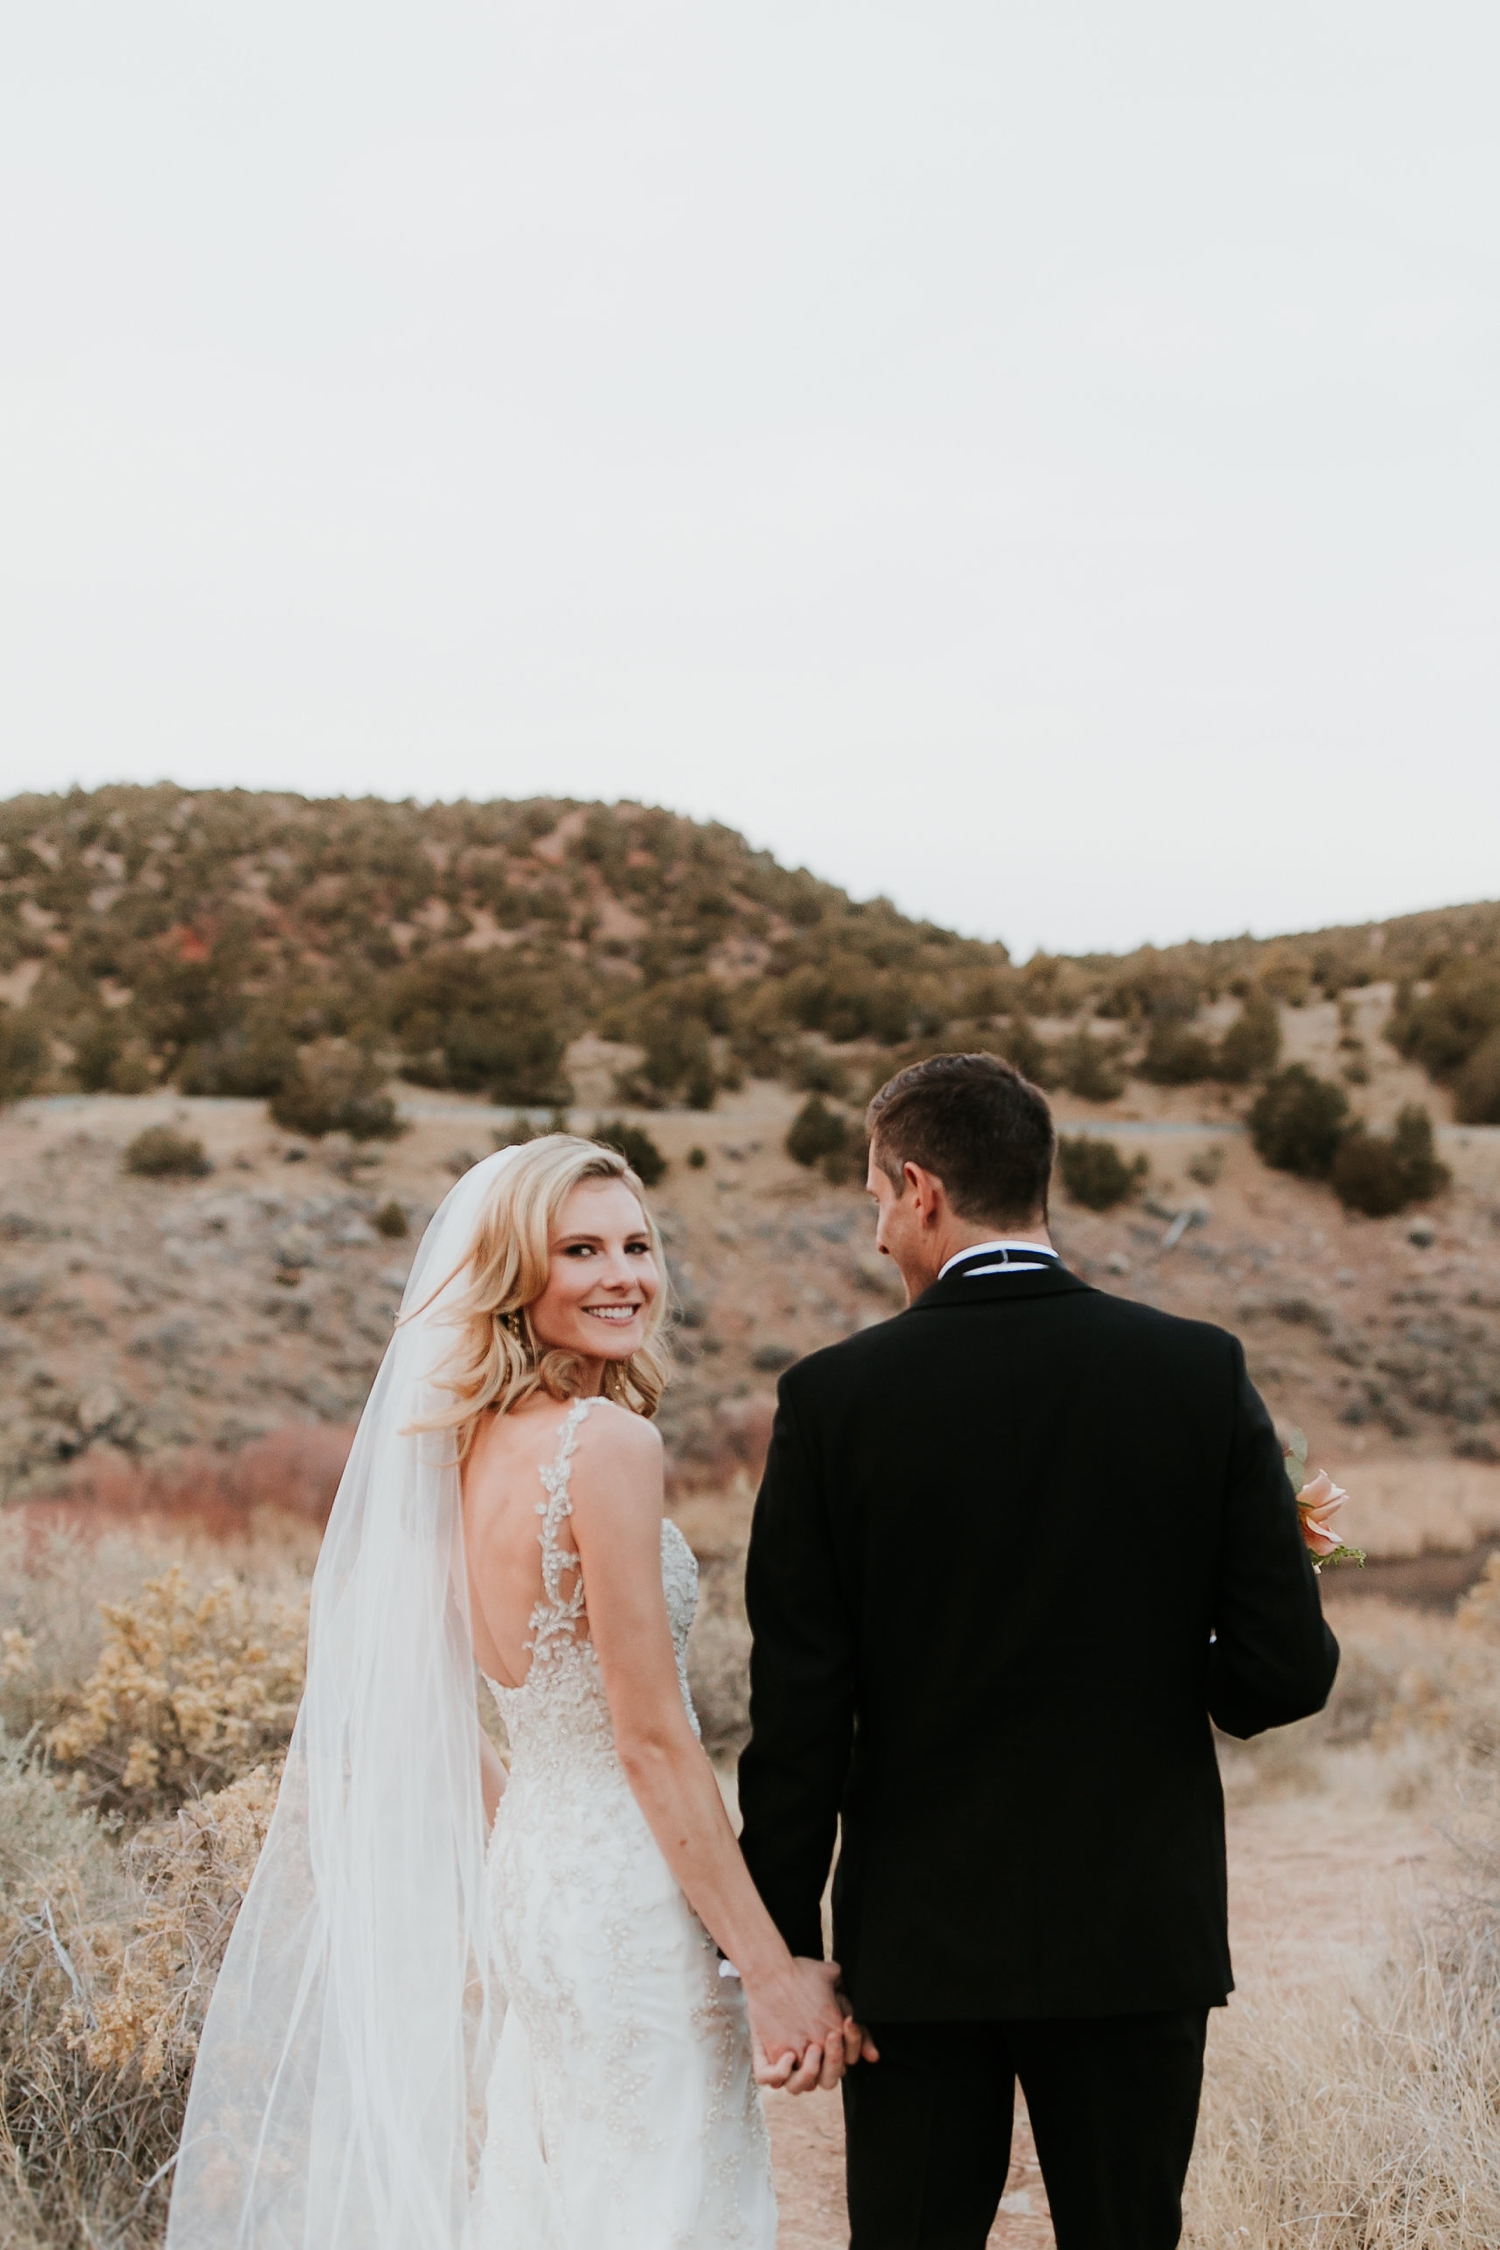 Alicia+lucia+photography+-+albuquerque+wedding+photographer+-+santa+fe+wedding+photography+-+new+mexico+wedding+photographer+-+la+fonda+wedding+-+la+fonda+winter+wedding_0094.jpg